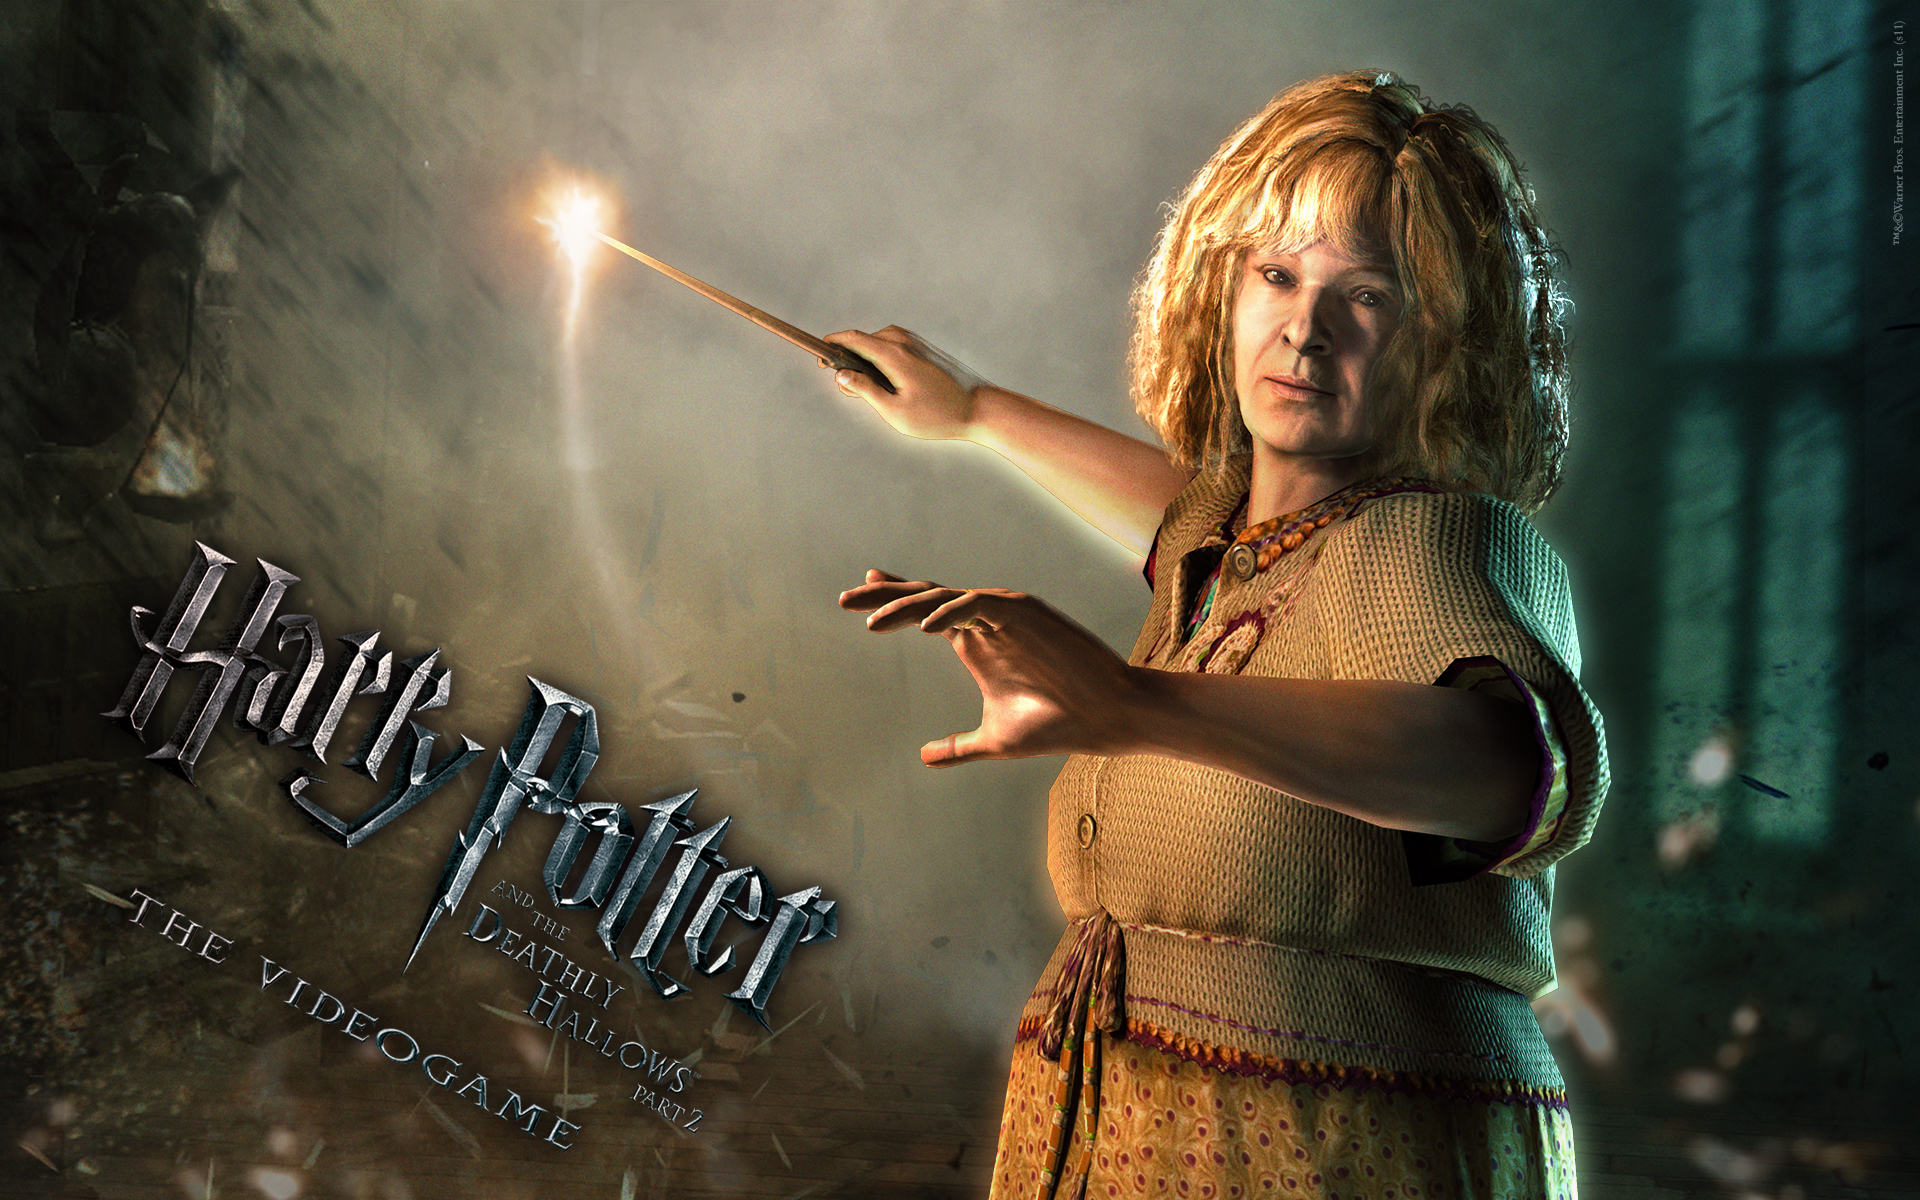 Top Wallpaper Mac Harry Potter - harry-potter-and-the-deathly-hallows-part-2-game-wallpaper-molly  Picture_789743.jpg